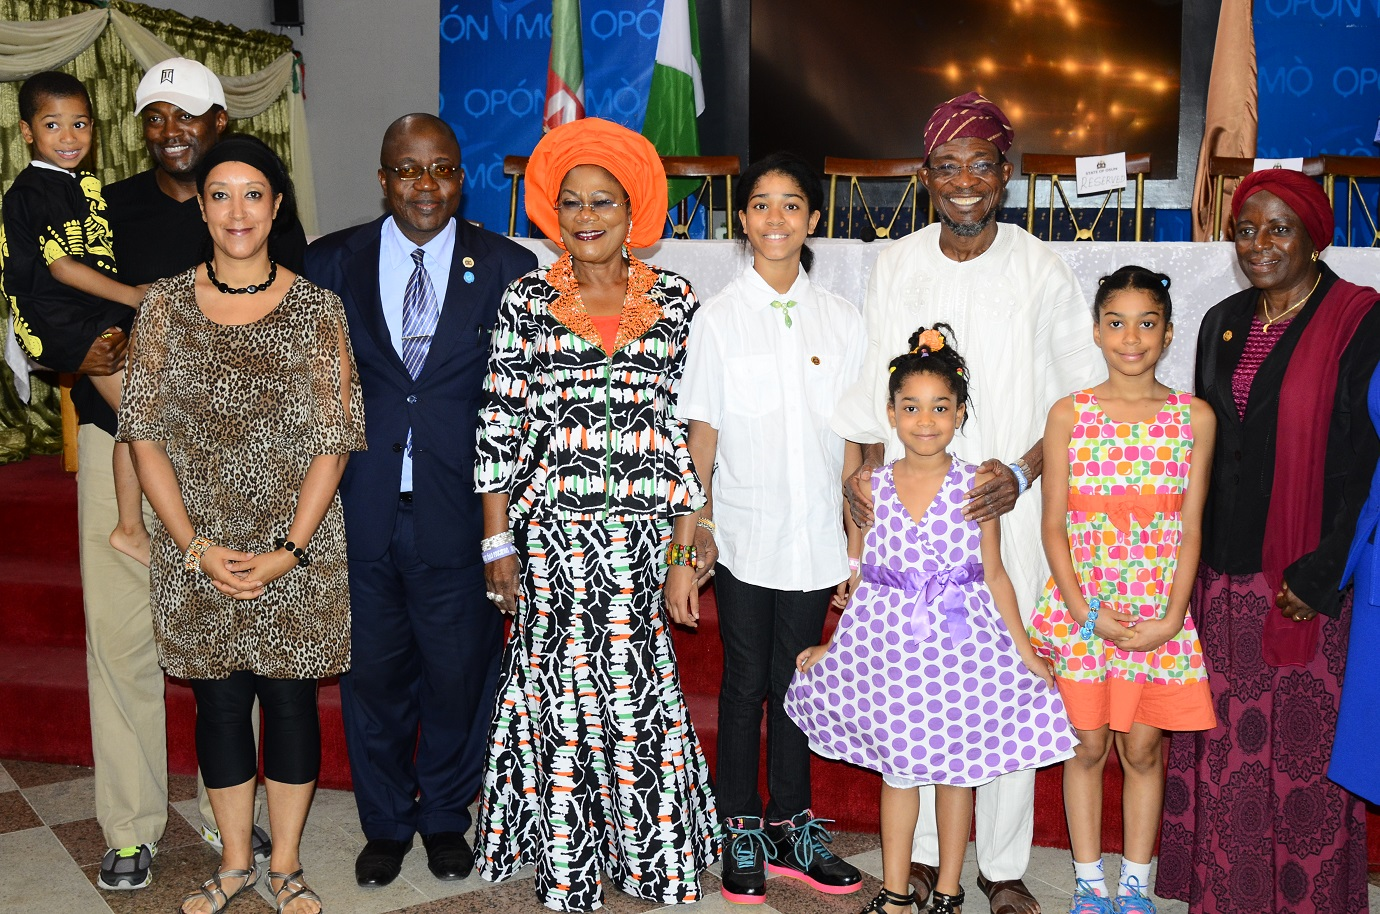 Governor State of Osun, Ogbeni Rauf Aregbesola (3rd right); his Deputy, Mrs Titi Laoye-Tomori (4th left); Initiator, Dream up; Speak up & Stand up Project/International Ambassador on Child Education Development, Miss Zuriel Oduwole (5th left); her Parents, Mrs Patricia (2nd left); Mr Ademola (left); Head of Service, Mr Olayinka Owoeye (3rd left); Special Adviser to the Governor on Tertiary Institutions, Alhaja Mulikat Bello (right) and others, during a Presentation of Award to Aregbesola as the Most Innovative Governor Supporting Education in Nigeria, at Government House Banquet Hall, Osogbo, State of Osun on Wednesday 02-07-2014